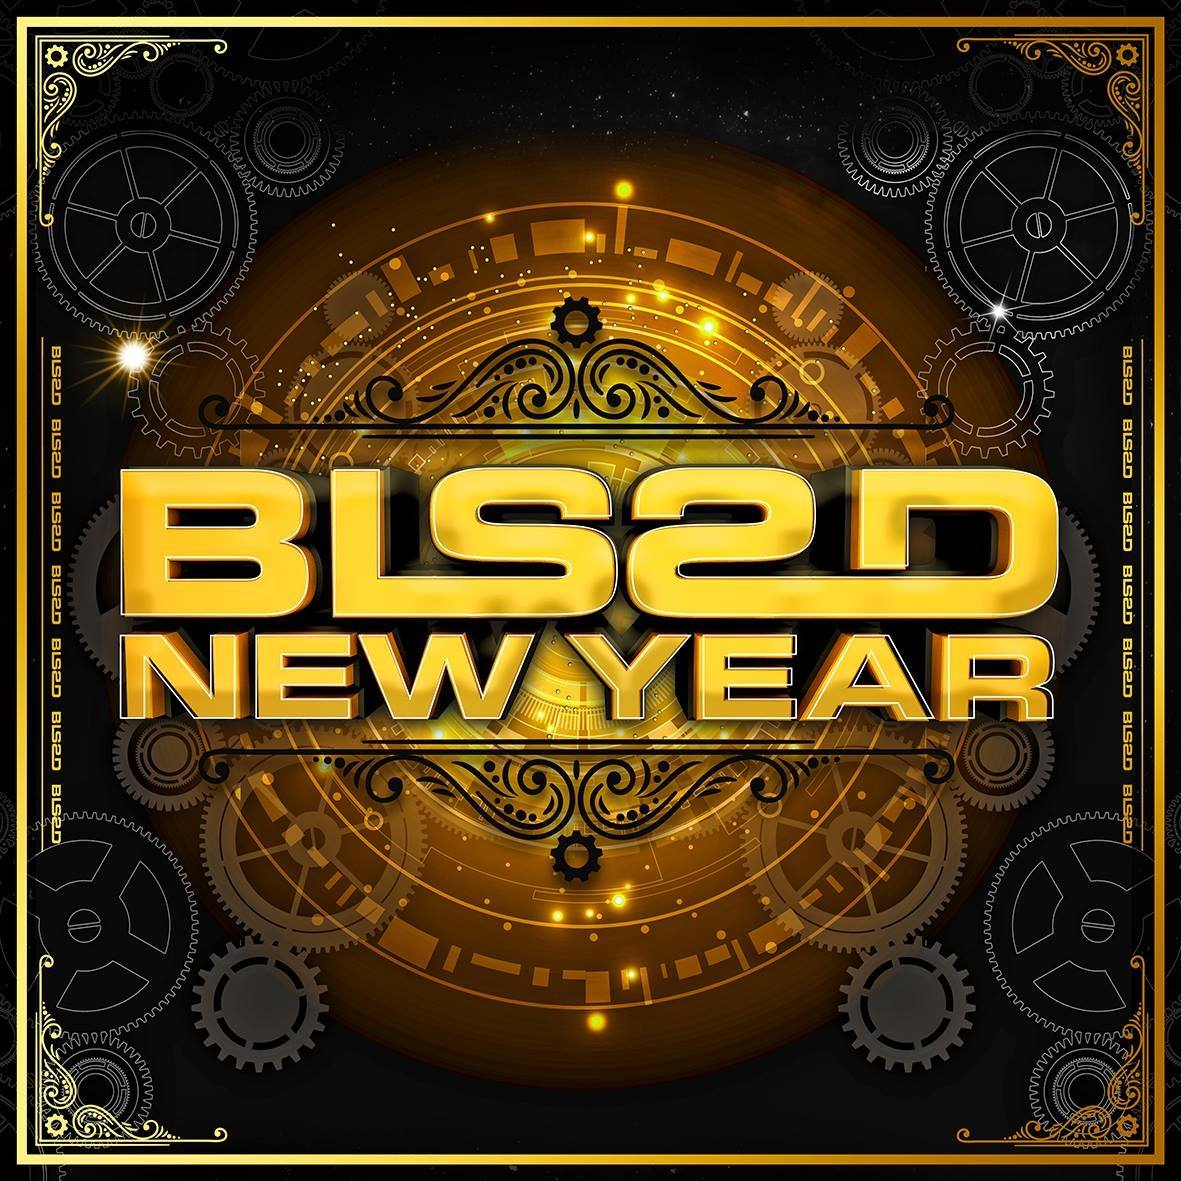 BLSSD-NEW-YEAR-RADION6